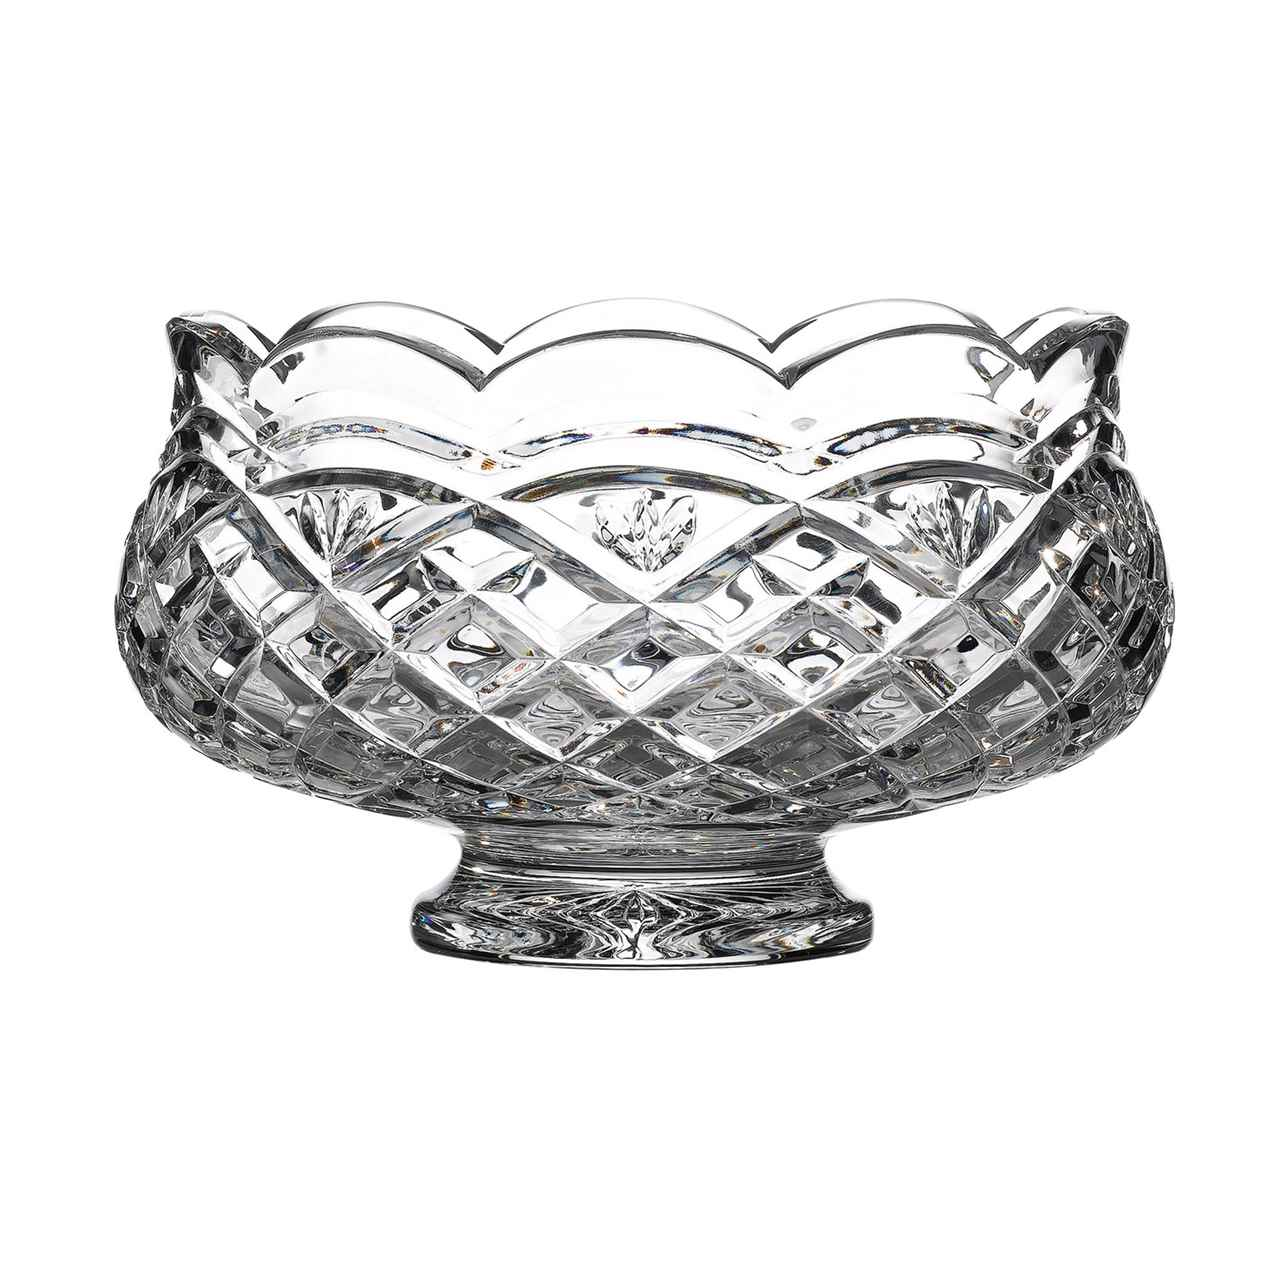 Heritage 20cm Footed Bowl